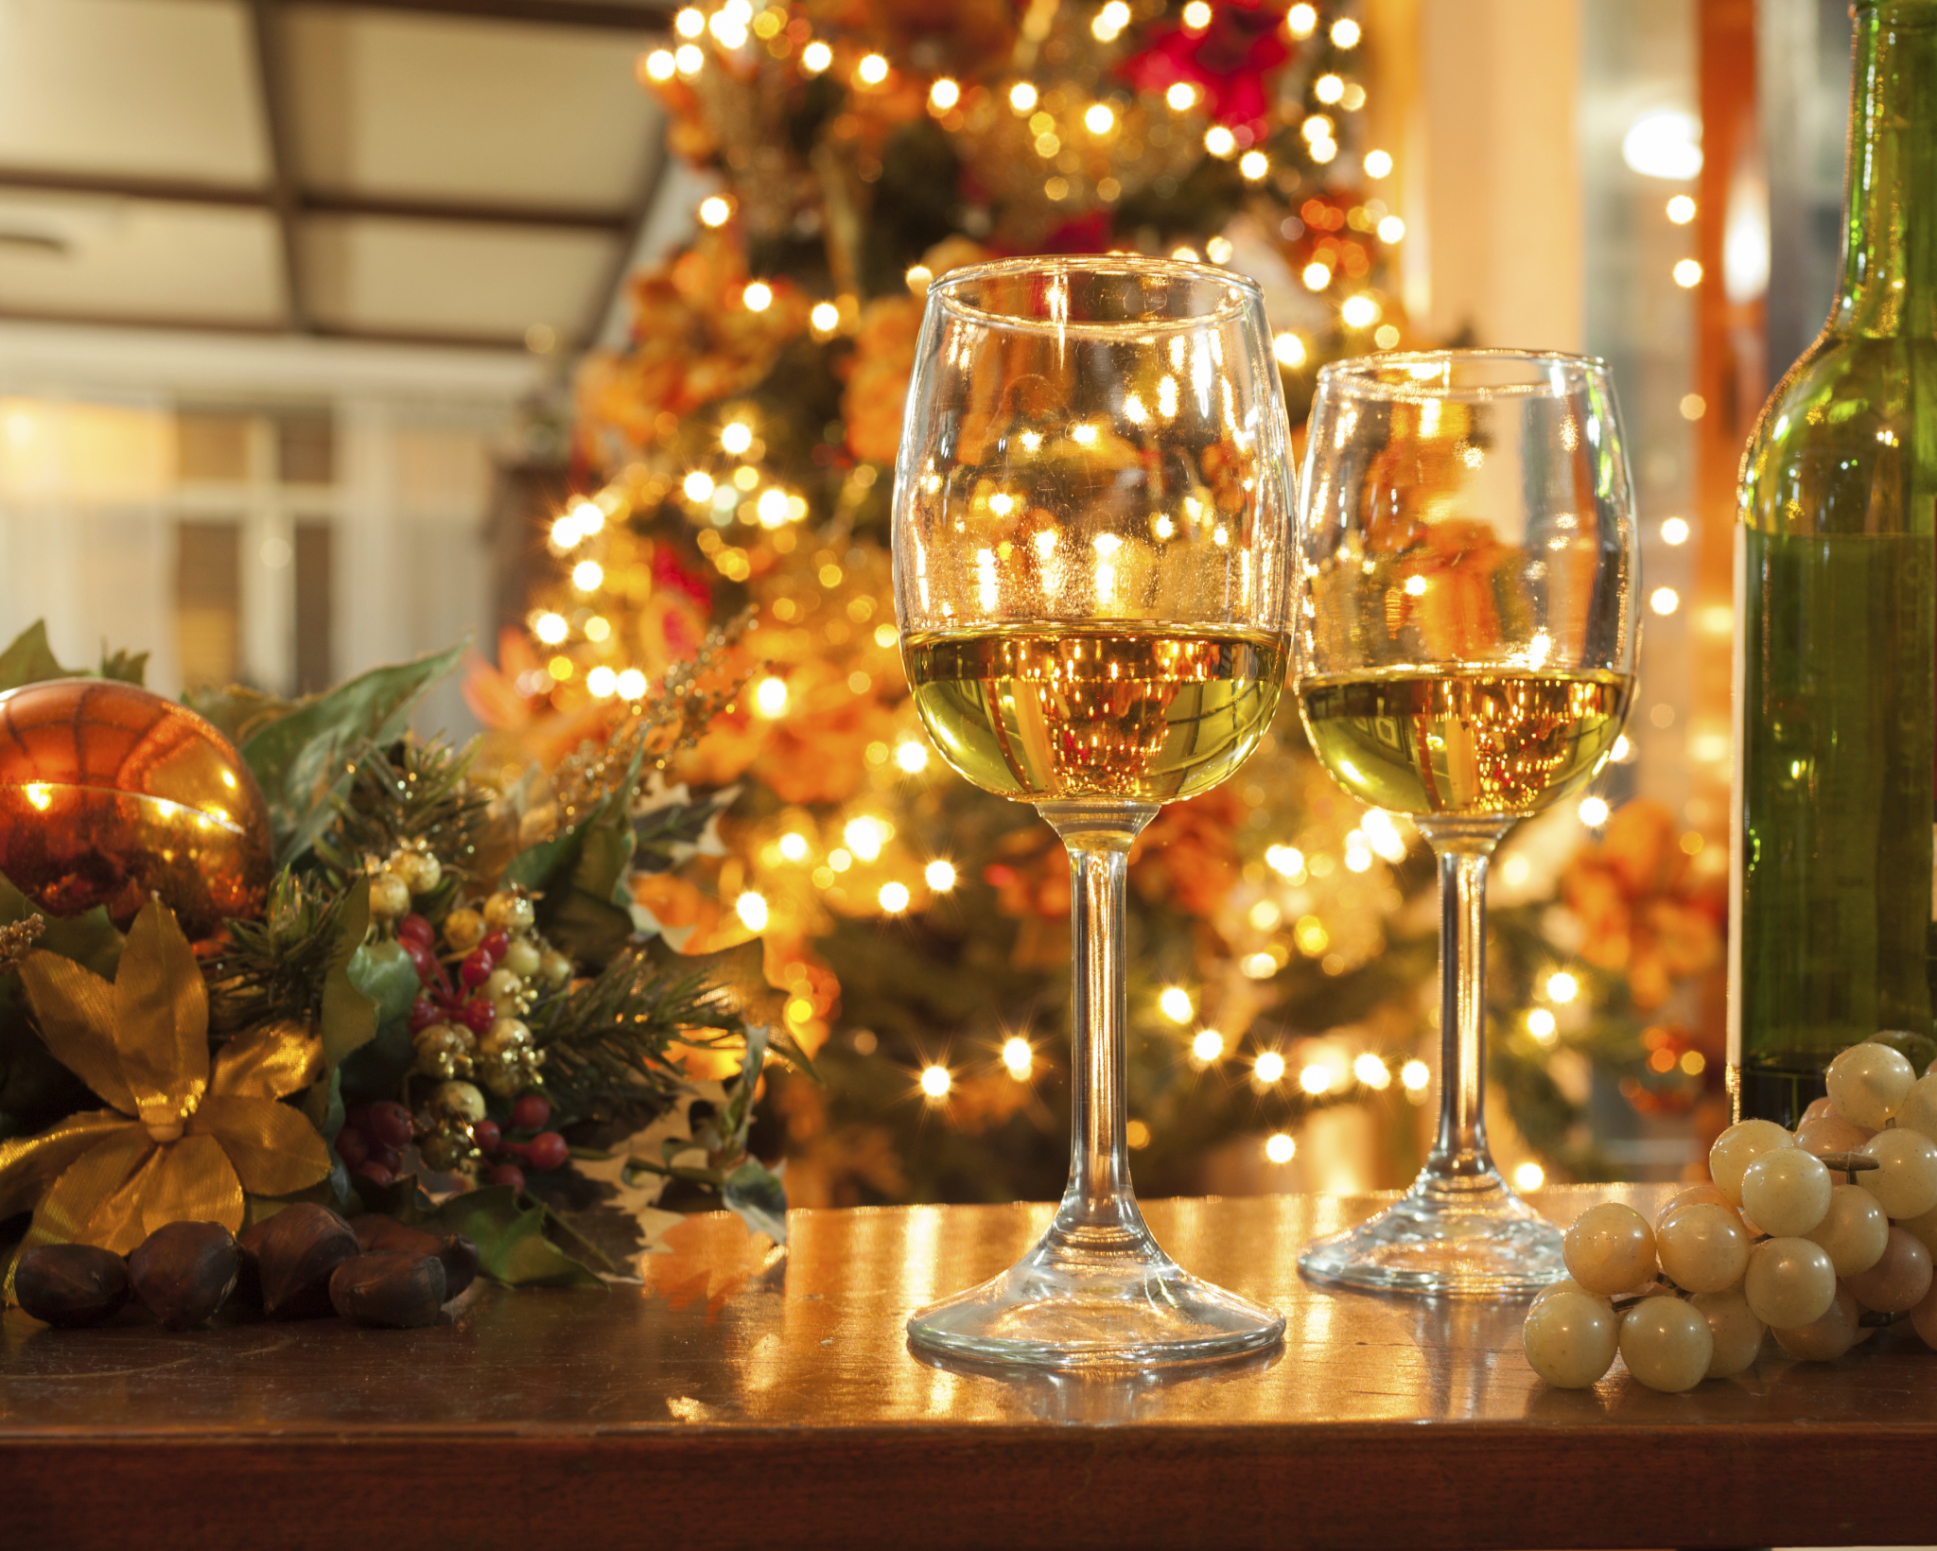 Wine of the Week: 'All I want for Christmas' holiday buying guide